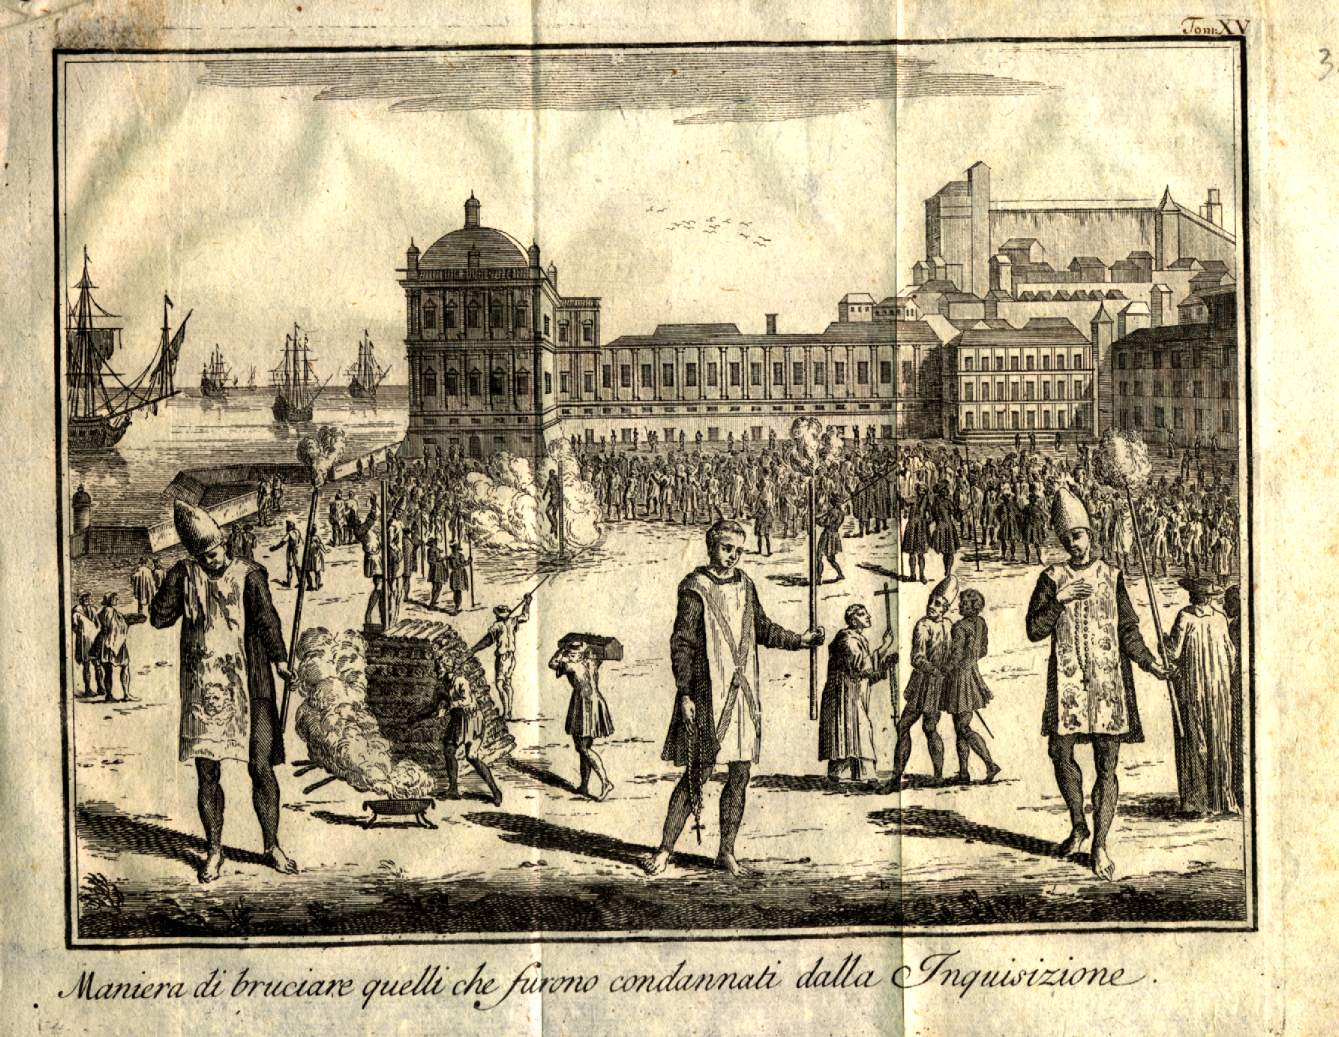 Day of Remembrance for the Victims of the Inquisition